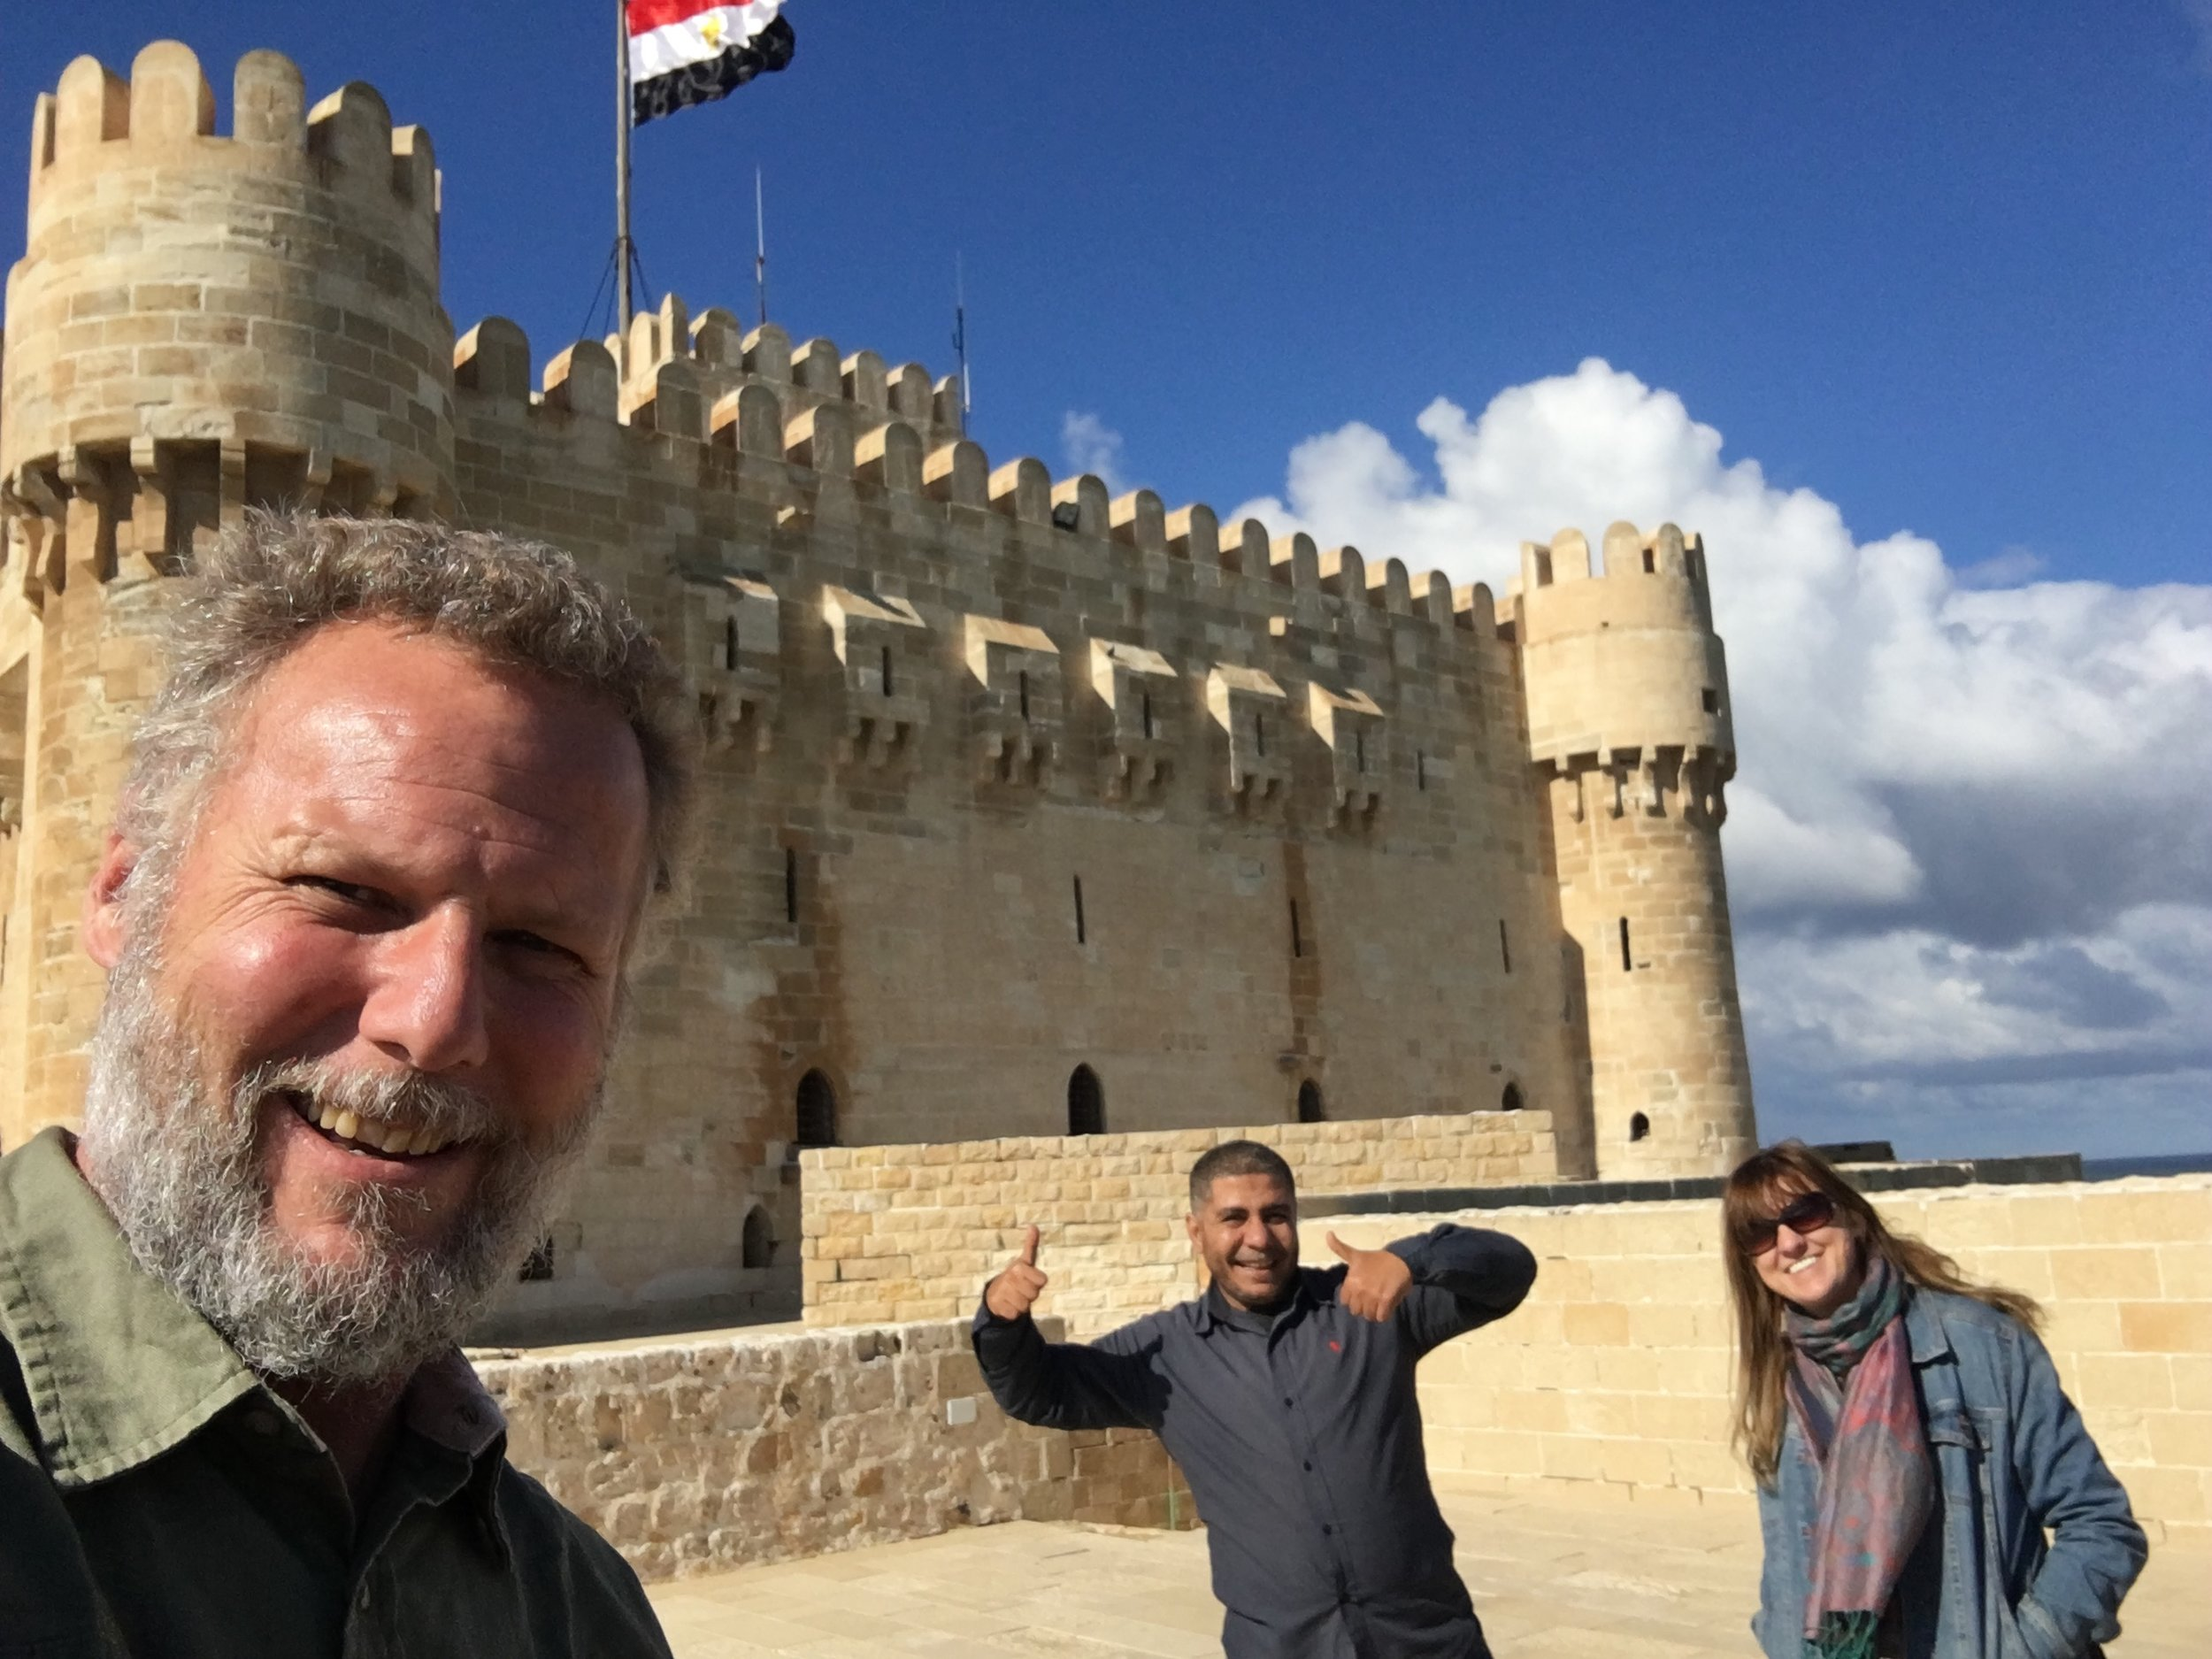 In Egypt with     Mostafa El Faham     - Our good friend, Egyptologist & owner of the tour company we are partnering with to take our friends/family to Egypt in 2020!